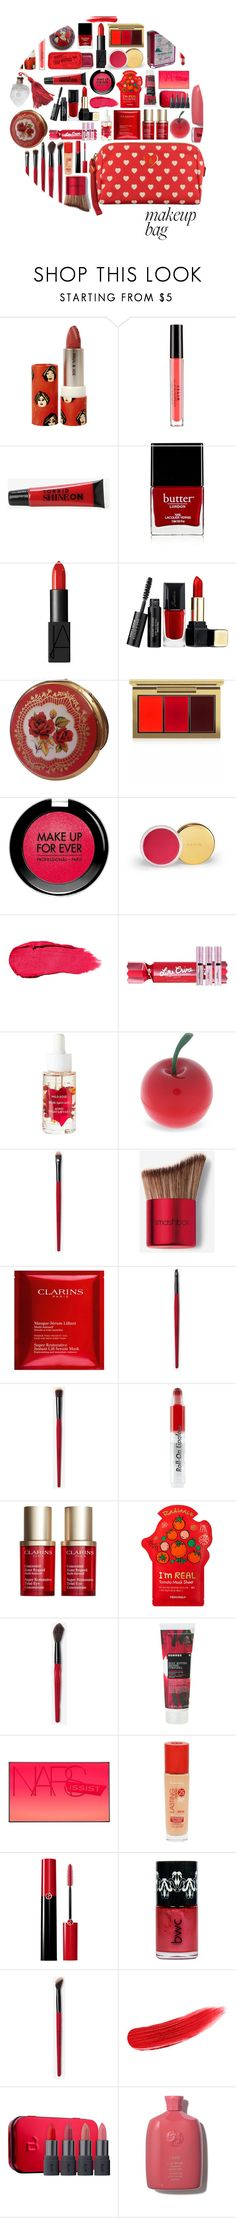 """makeup bag; red-red wine."" by roseshaze ❤ liked on Polyvore featuring beauty, Paul & Joe, Stila, Torrid, Butter London, NARS Cosmetics, Guerlain, MAC Cosmetics, MAKE UP FOR EVER and Lime Crime"